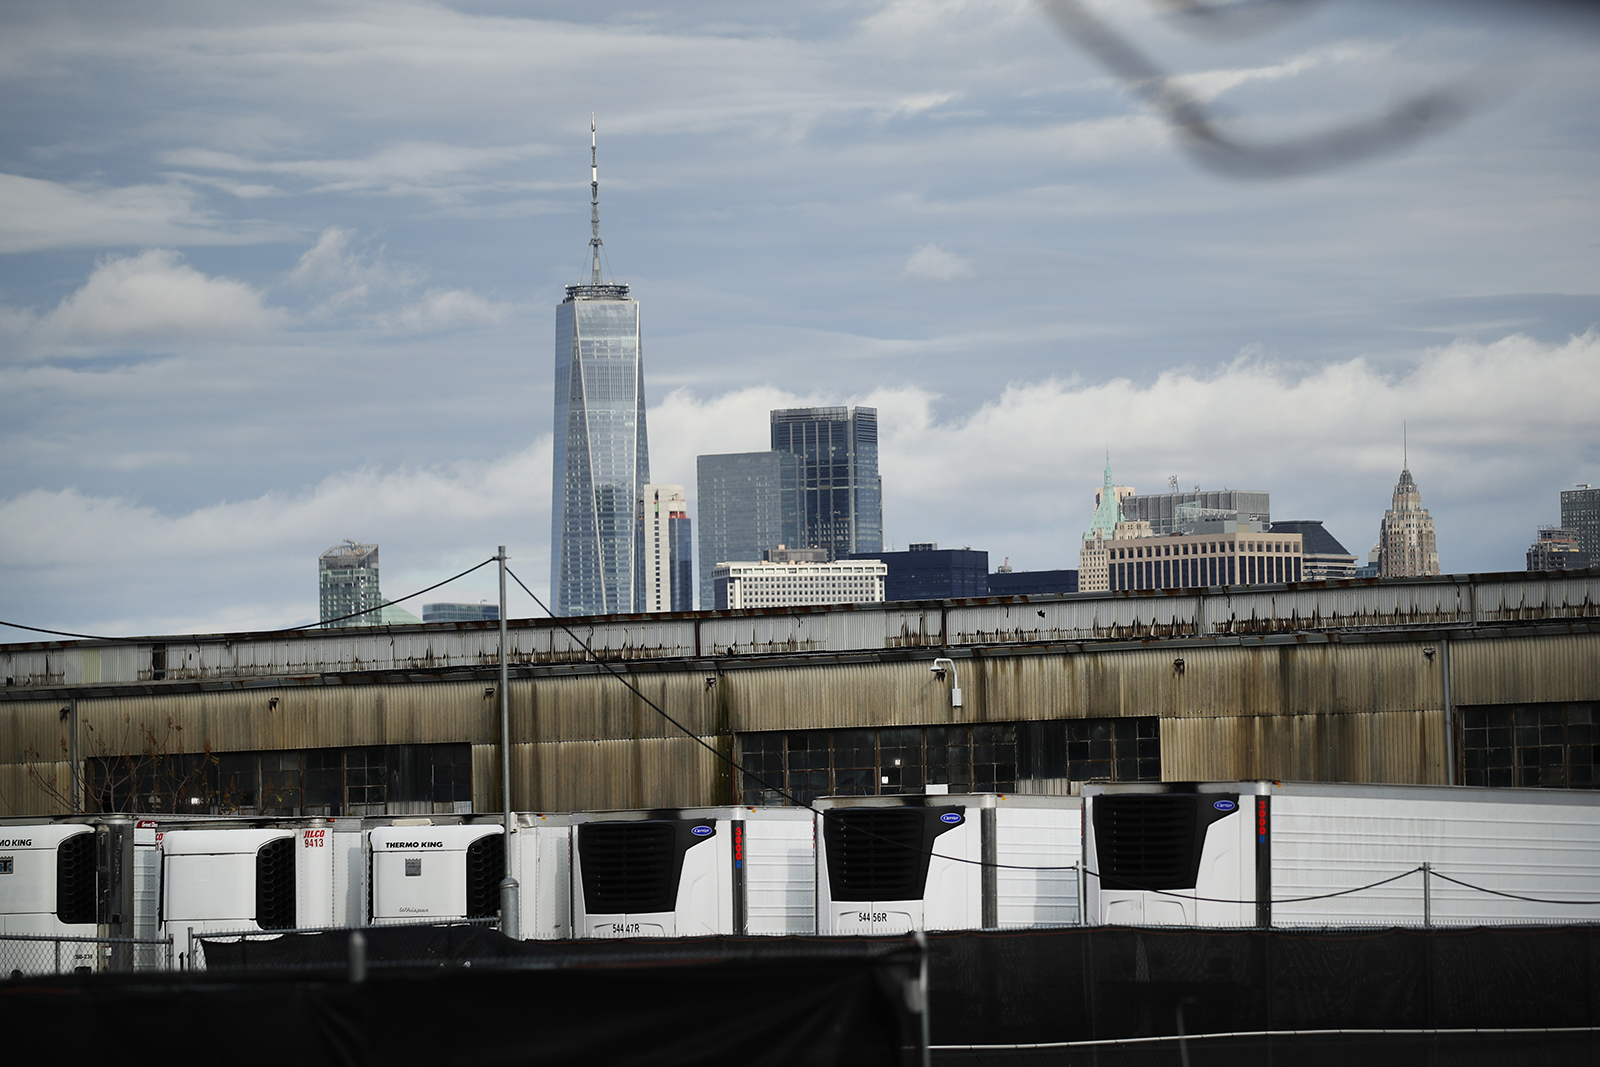 Refrigerated morgue trailers believed to be holding the bodies of people who died of Covid-19 are seen at South Brooklyn Marine Terminal on November 23, 2020 in New York City.